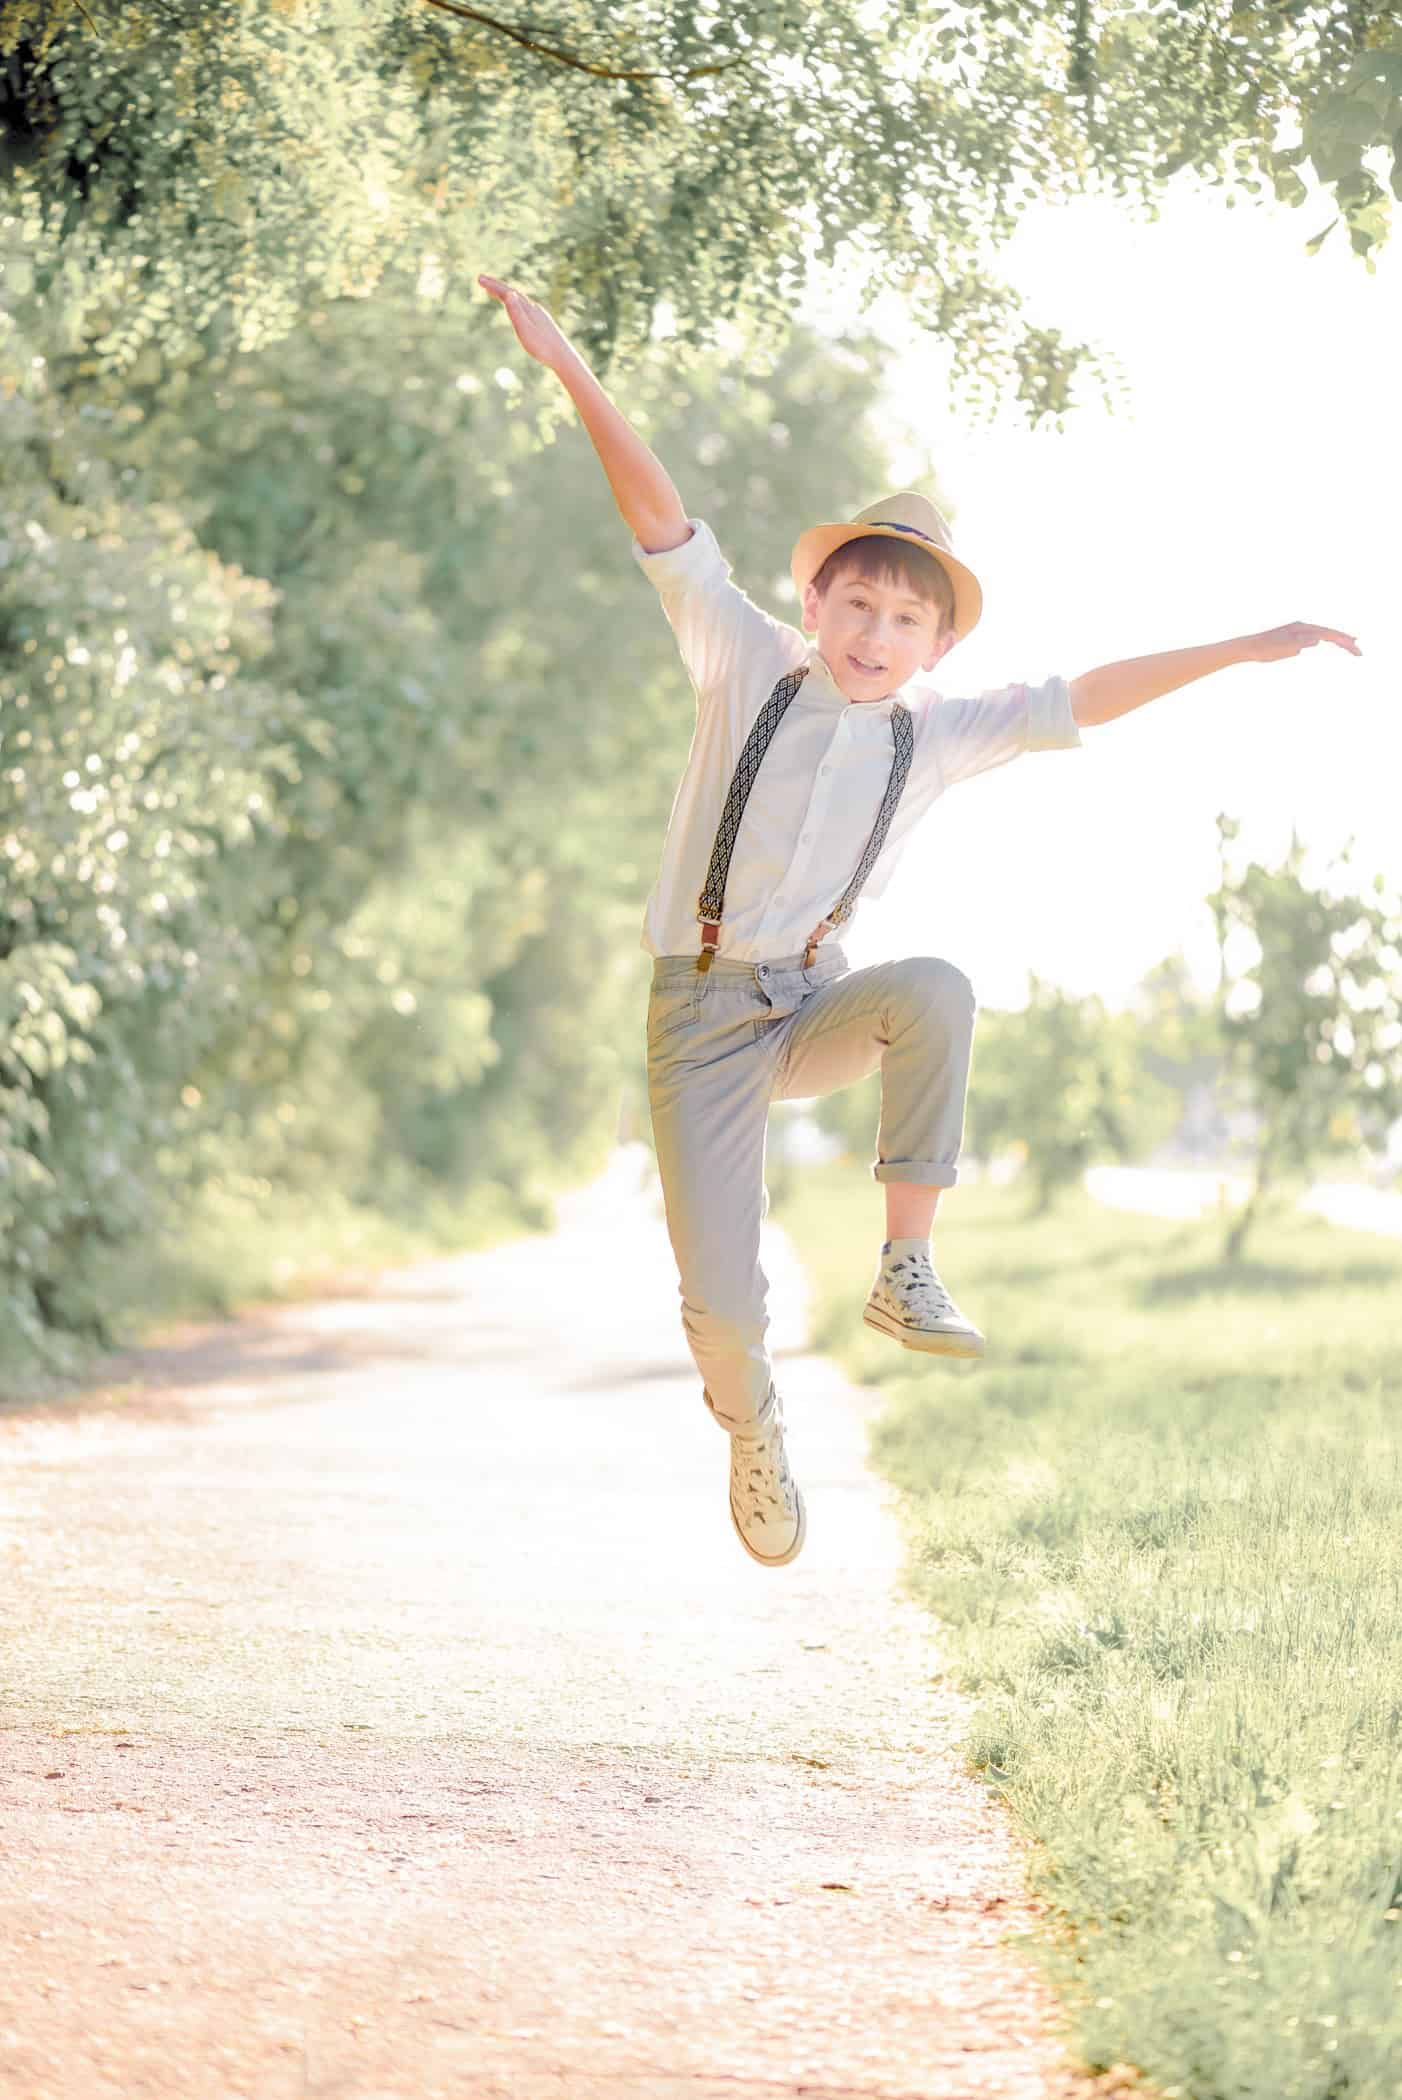 happy-boy-jumping-on-street-against-green-grass-soft-focus-summer-activities_t20_BajgPO